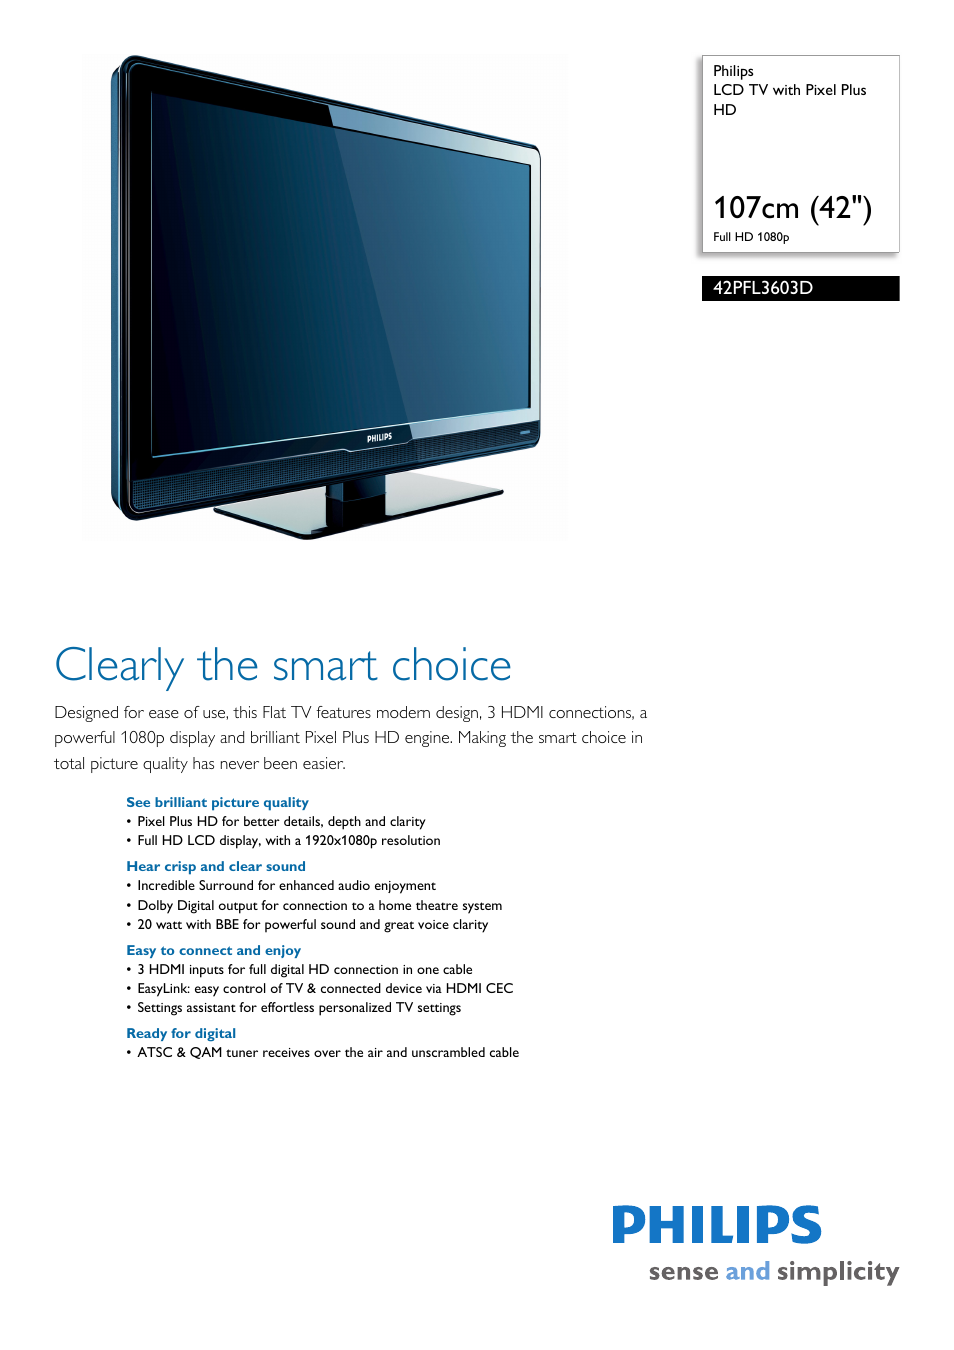 Philips 42PFL3603D-F7 User Manual | 3 pages